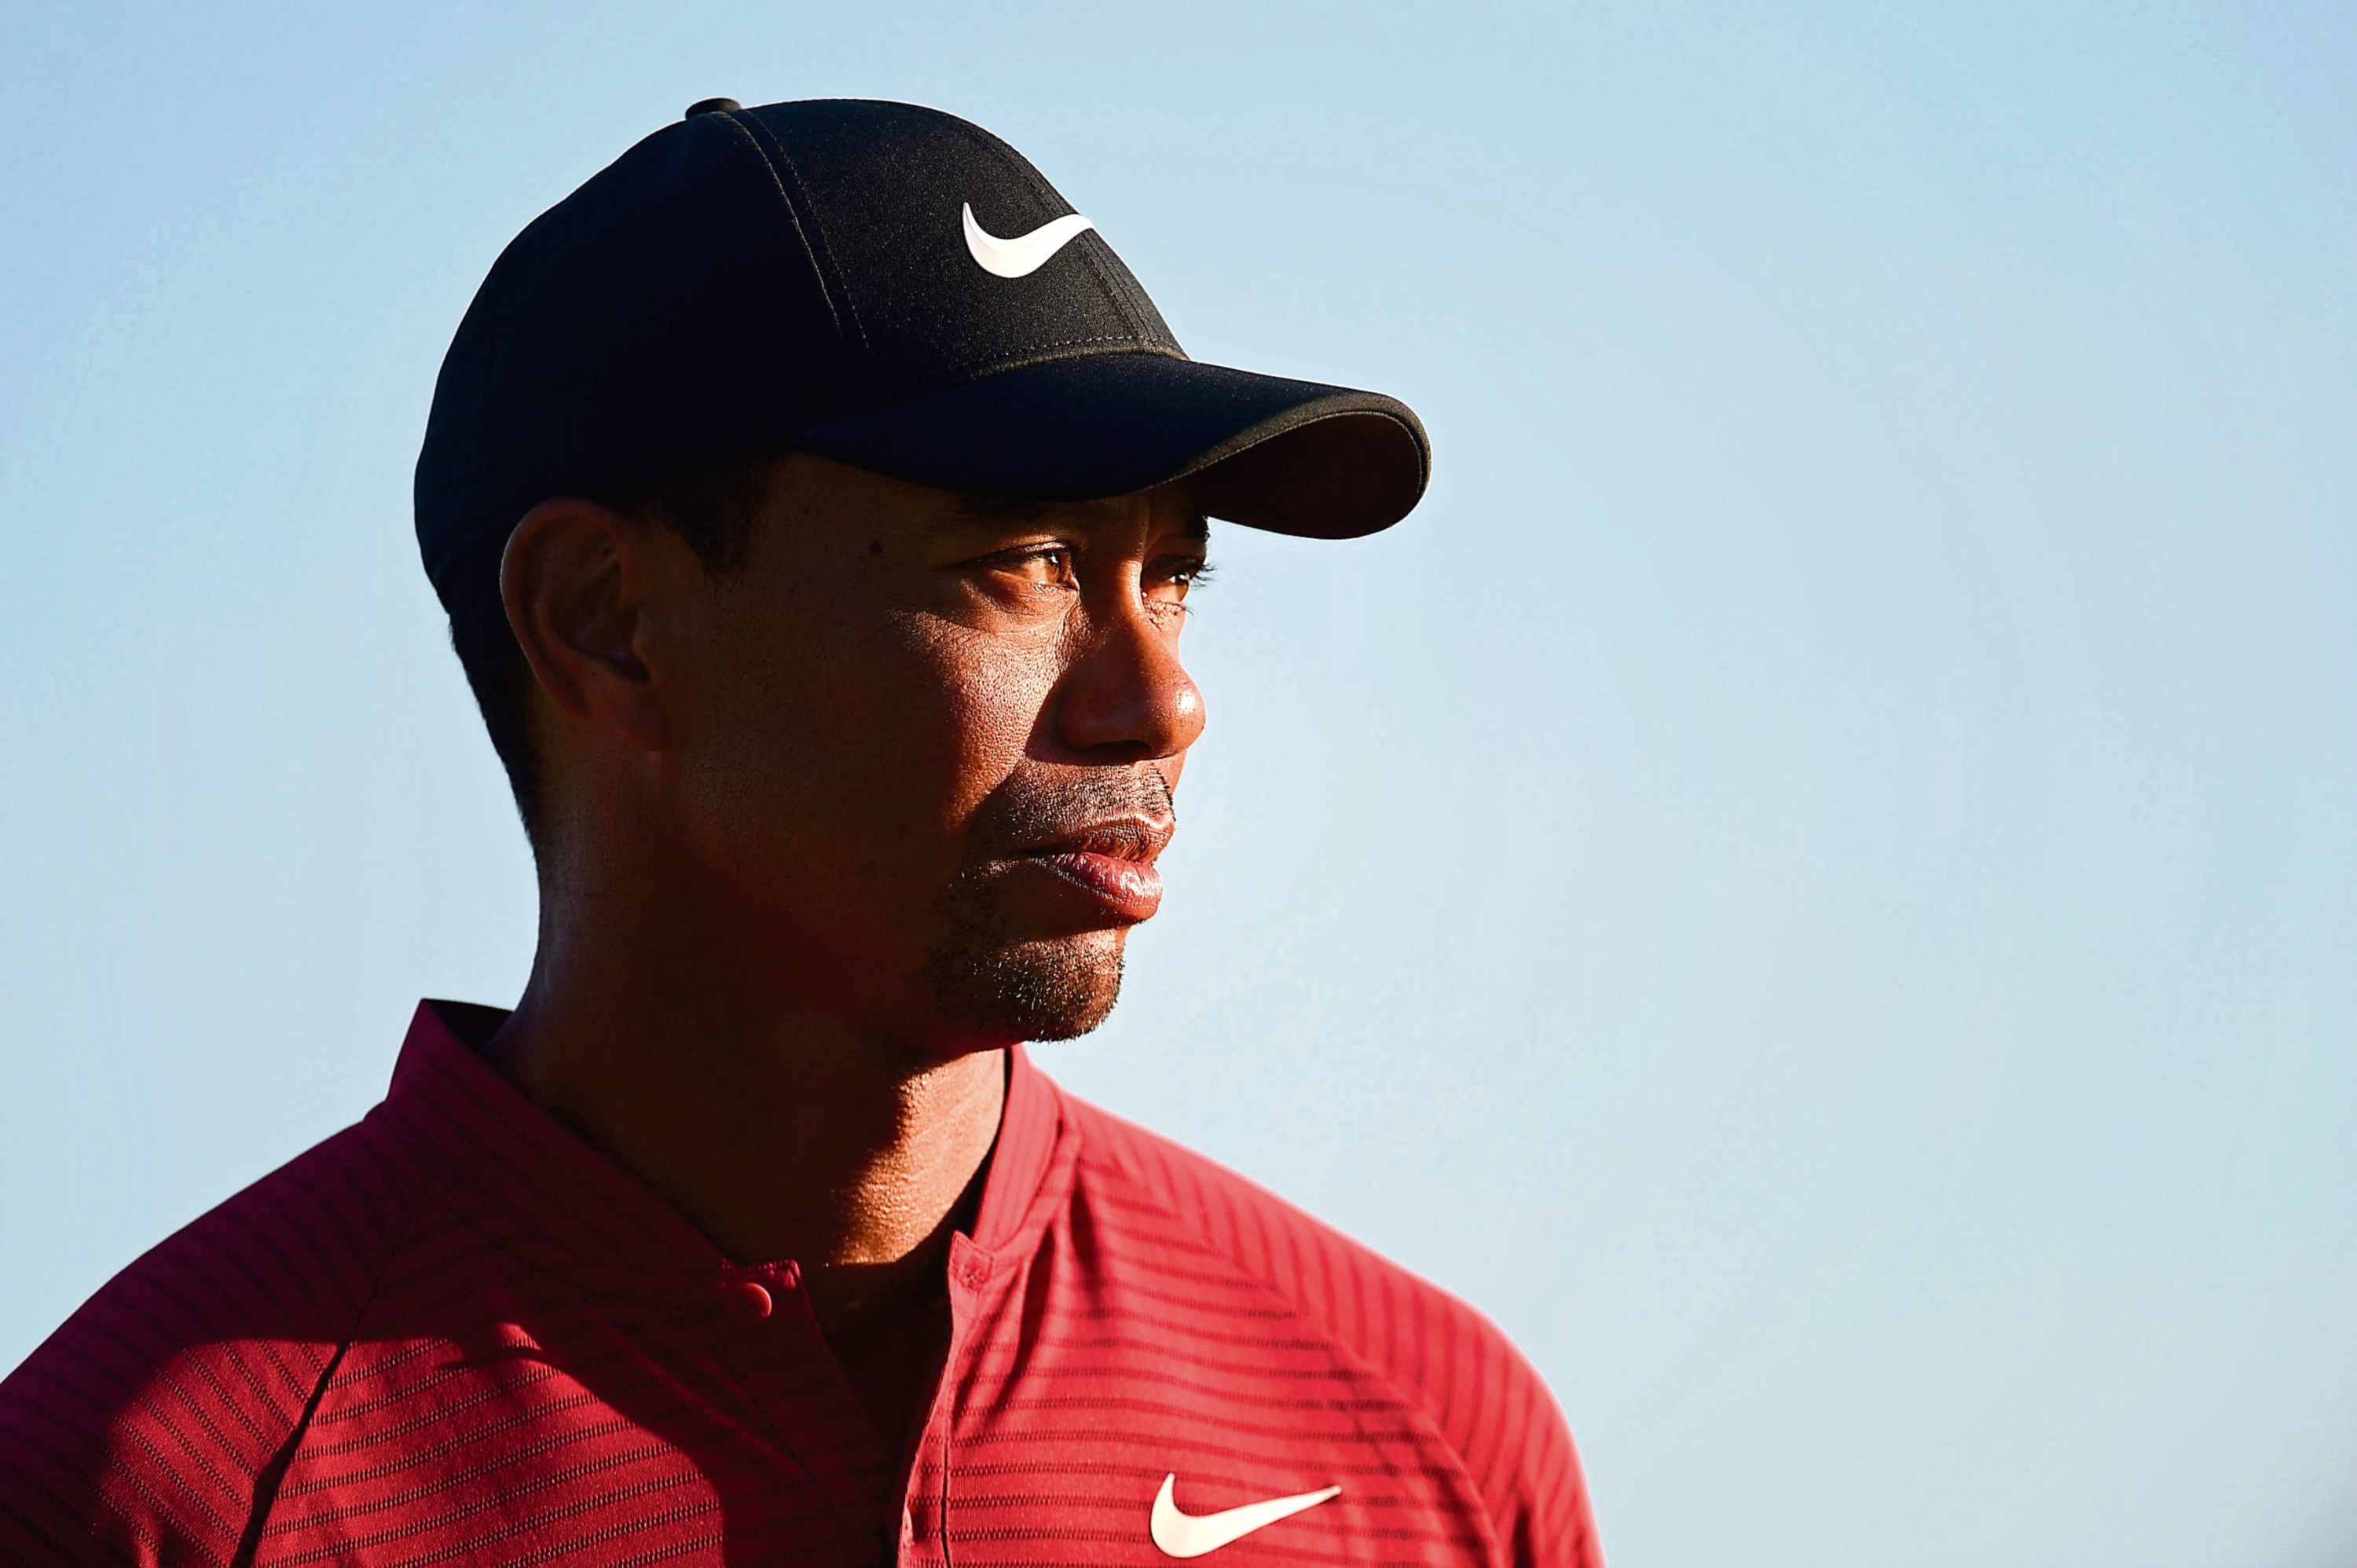 Tiger Woods personal Bung remains retired, but he wins one of the other categories in T2G's annual awards.